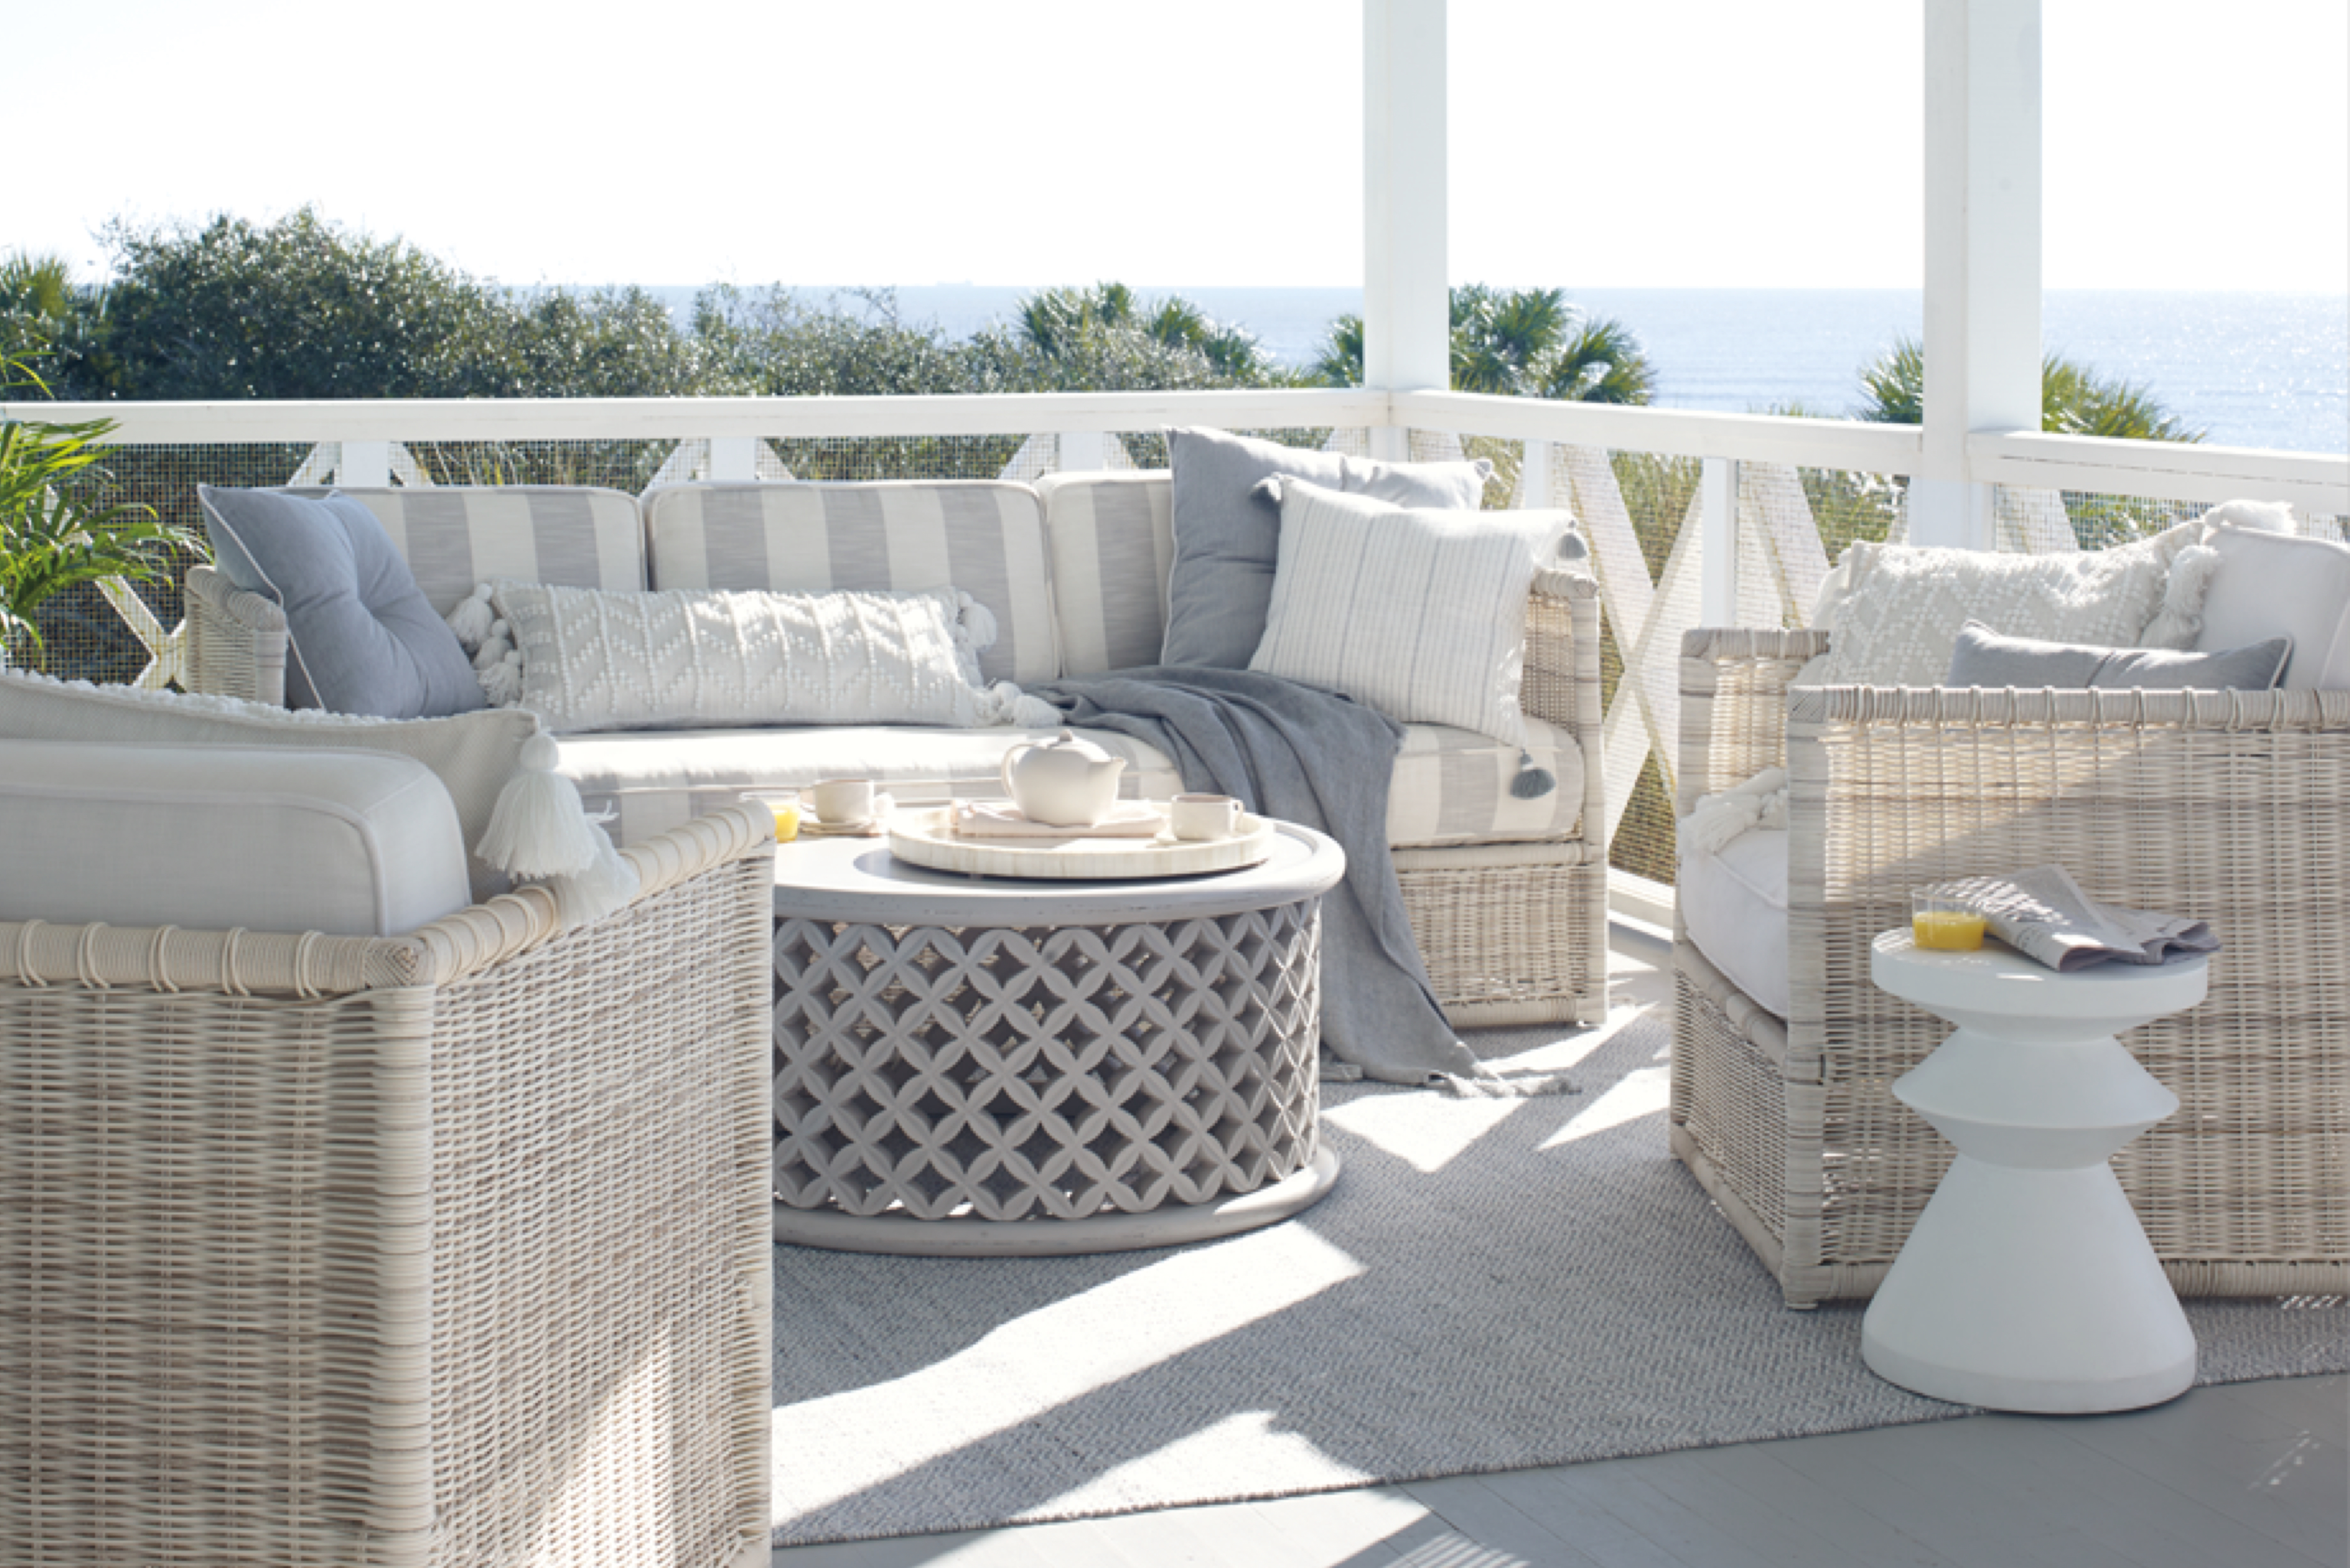 Pacifica outdoor furniture at Serene and Lily.